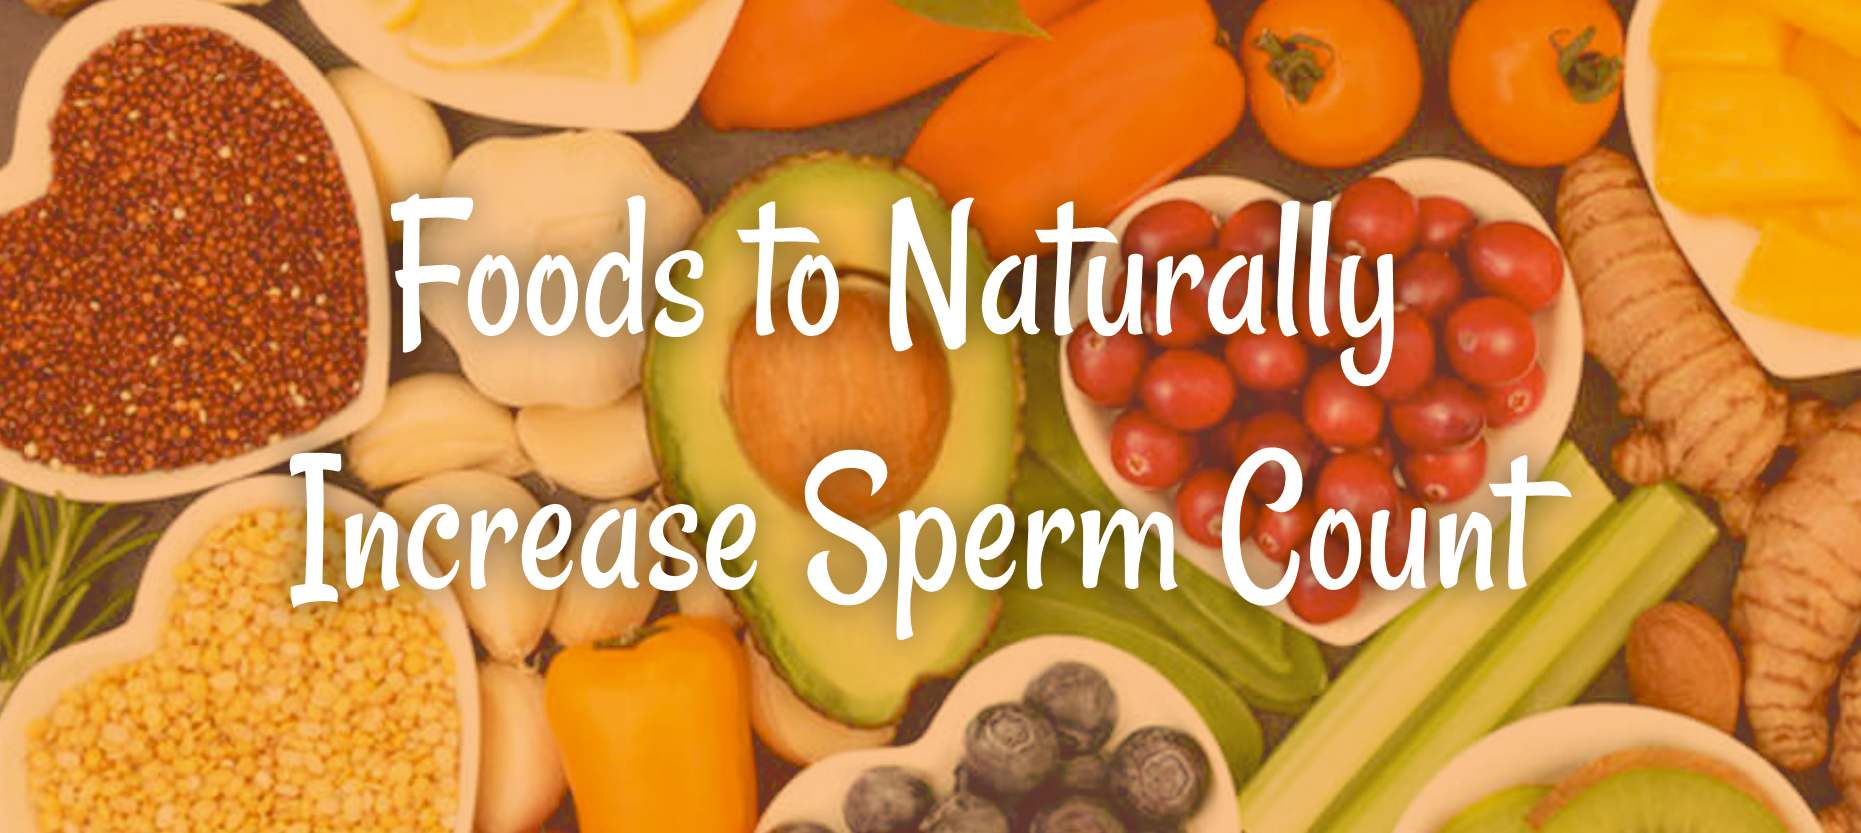 Foods to Naturally Increase Sperm Count